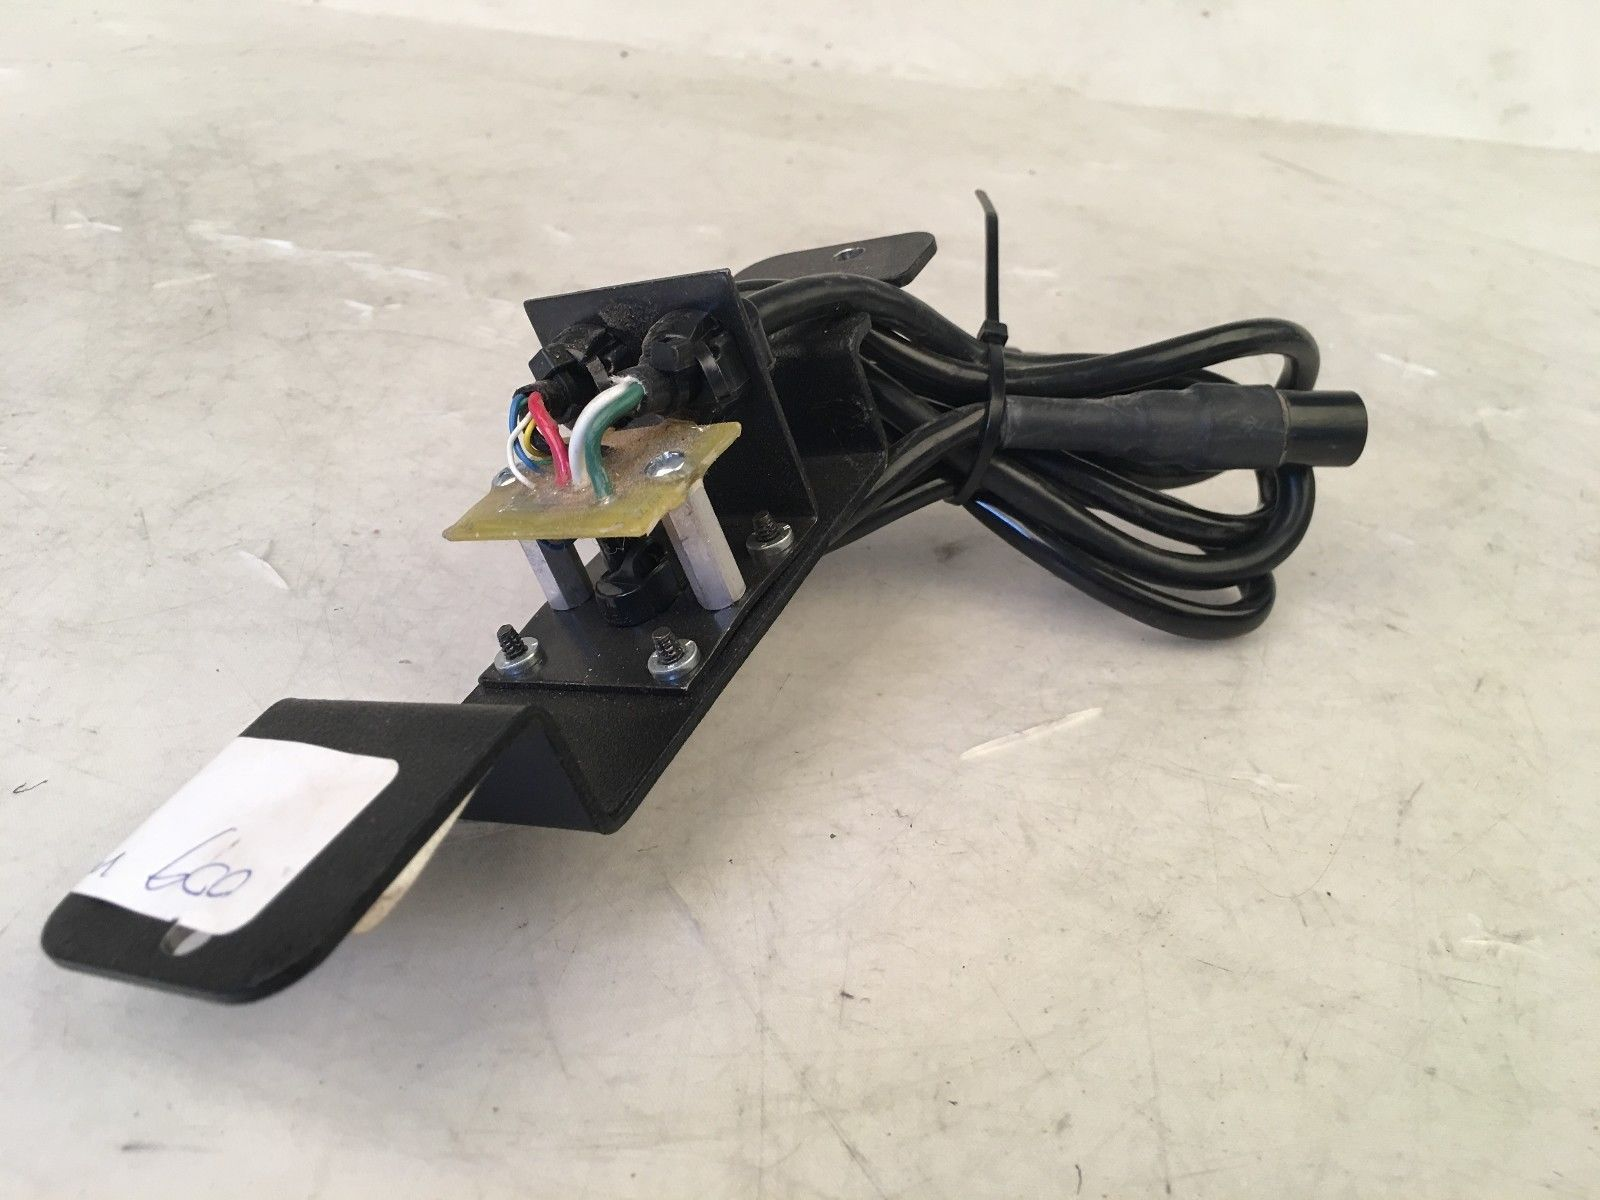 Control Wiring Harness w/ Bracket from Pride Quantum 600 Power Wheelchairs